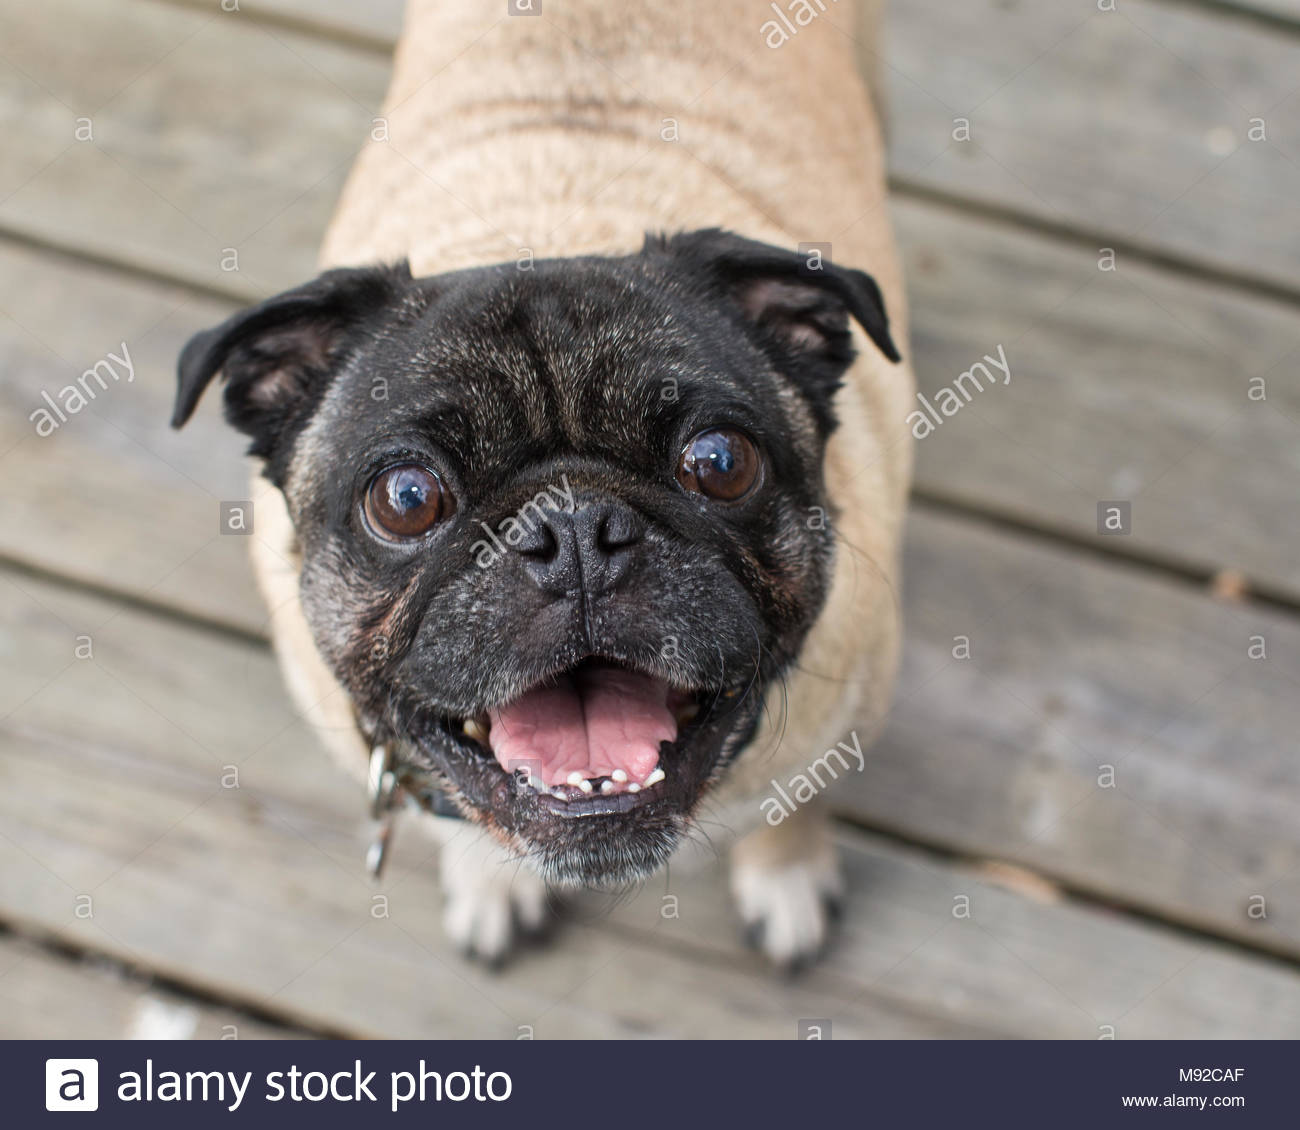 Happy-looking smiling pug with black face and tan body looking up at camera - Stock Image